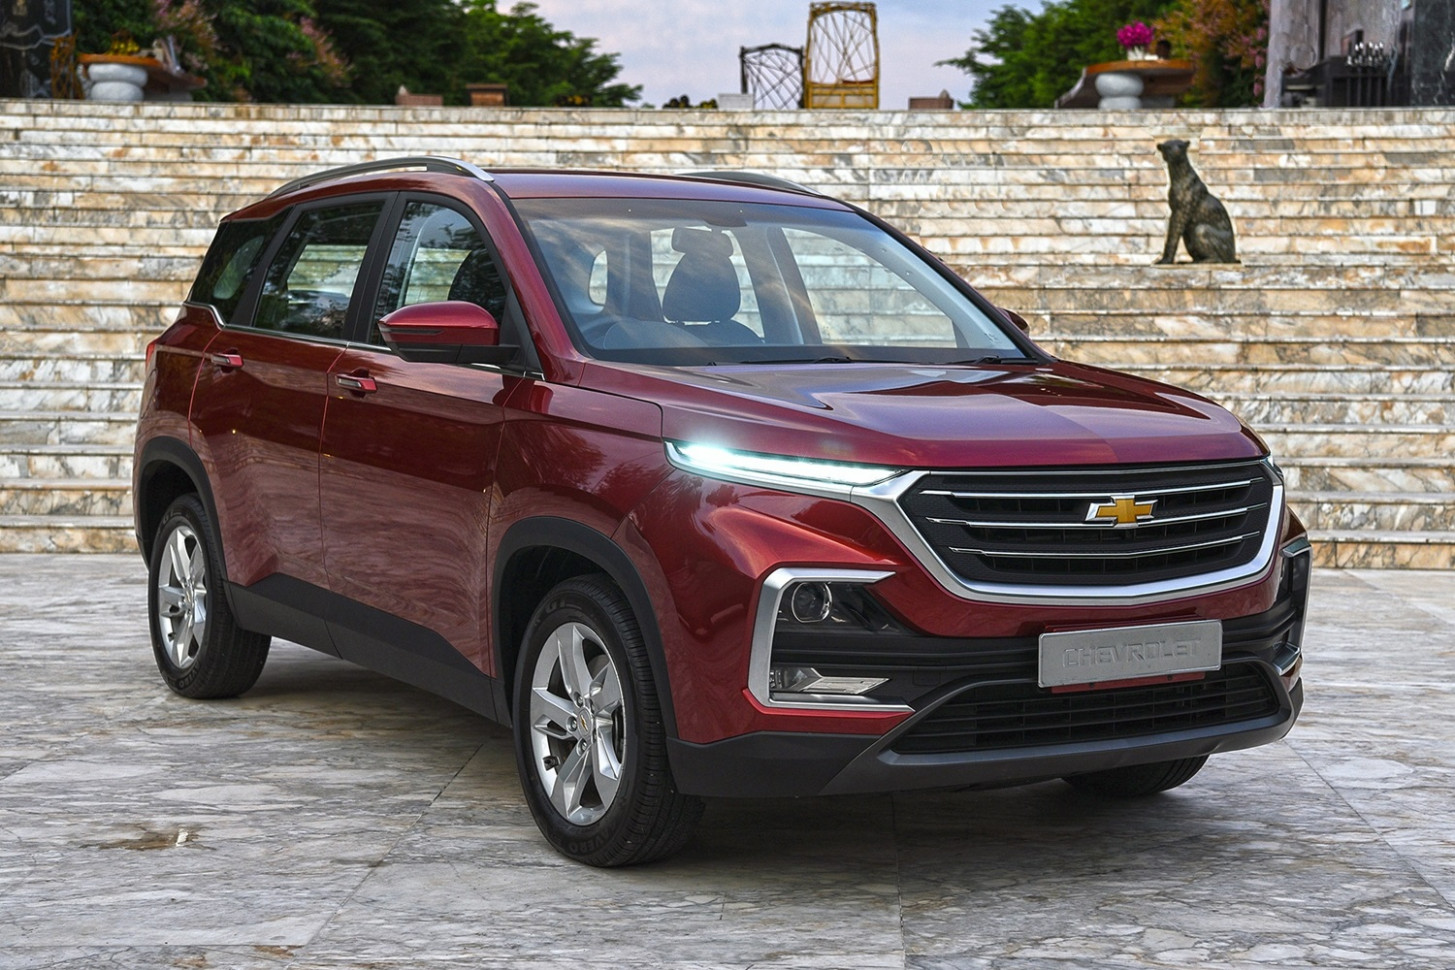 New Chevrolet Captiva Now Available In The Middle East | GM Authority - chevrolet new captiva 2020